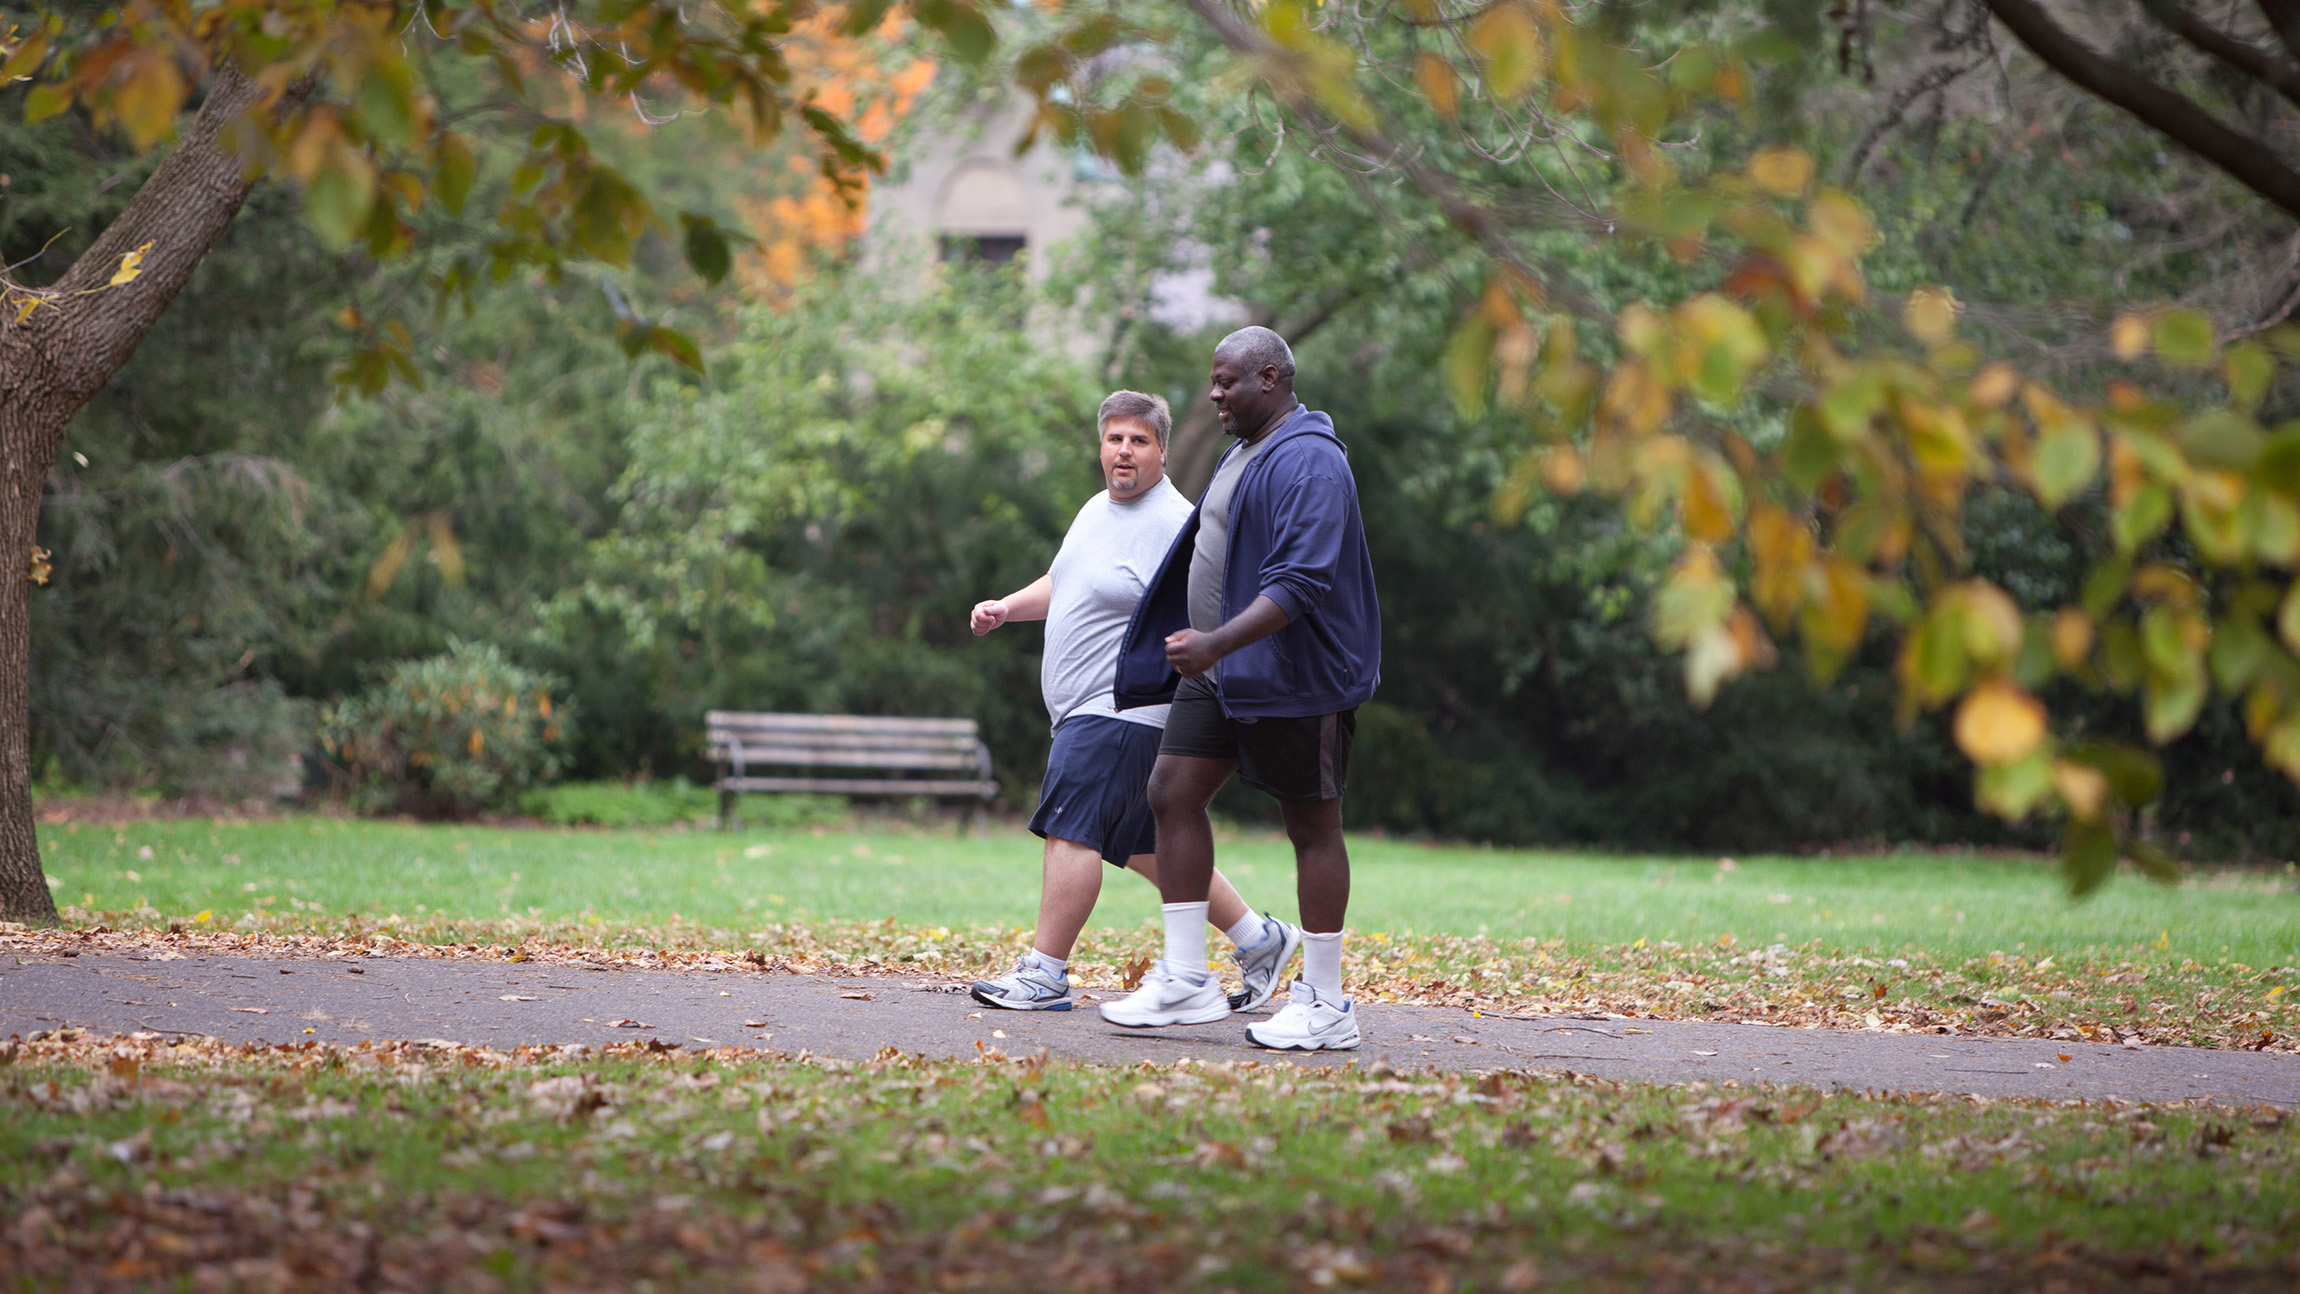 Two men walking in the park